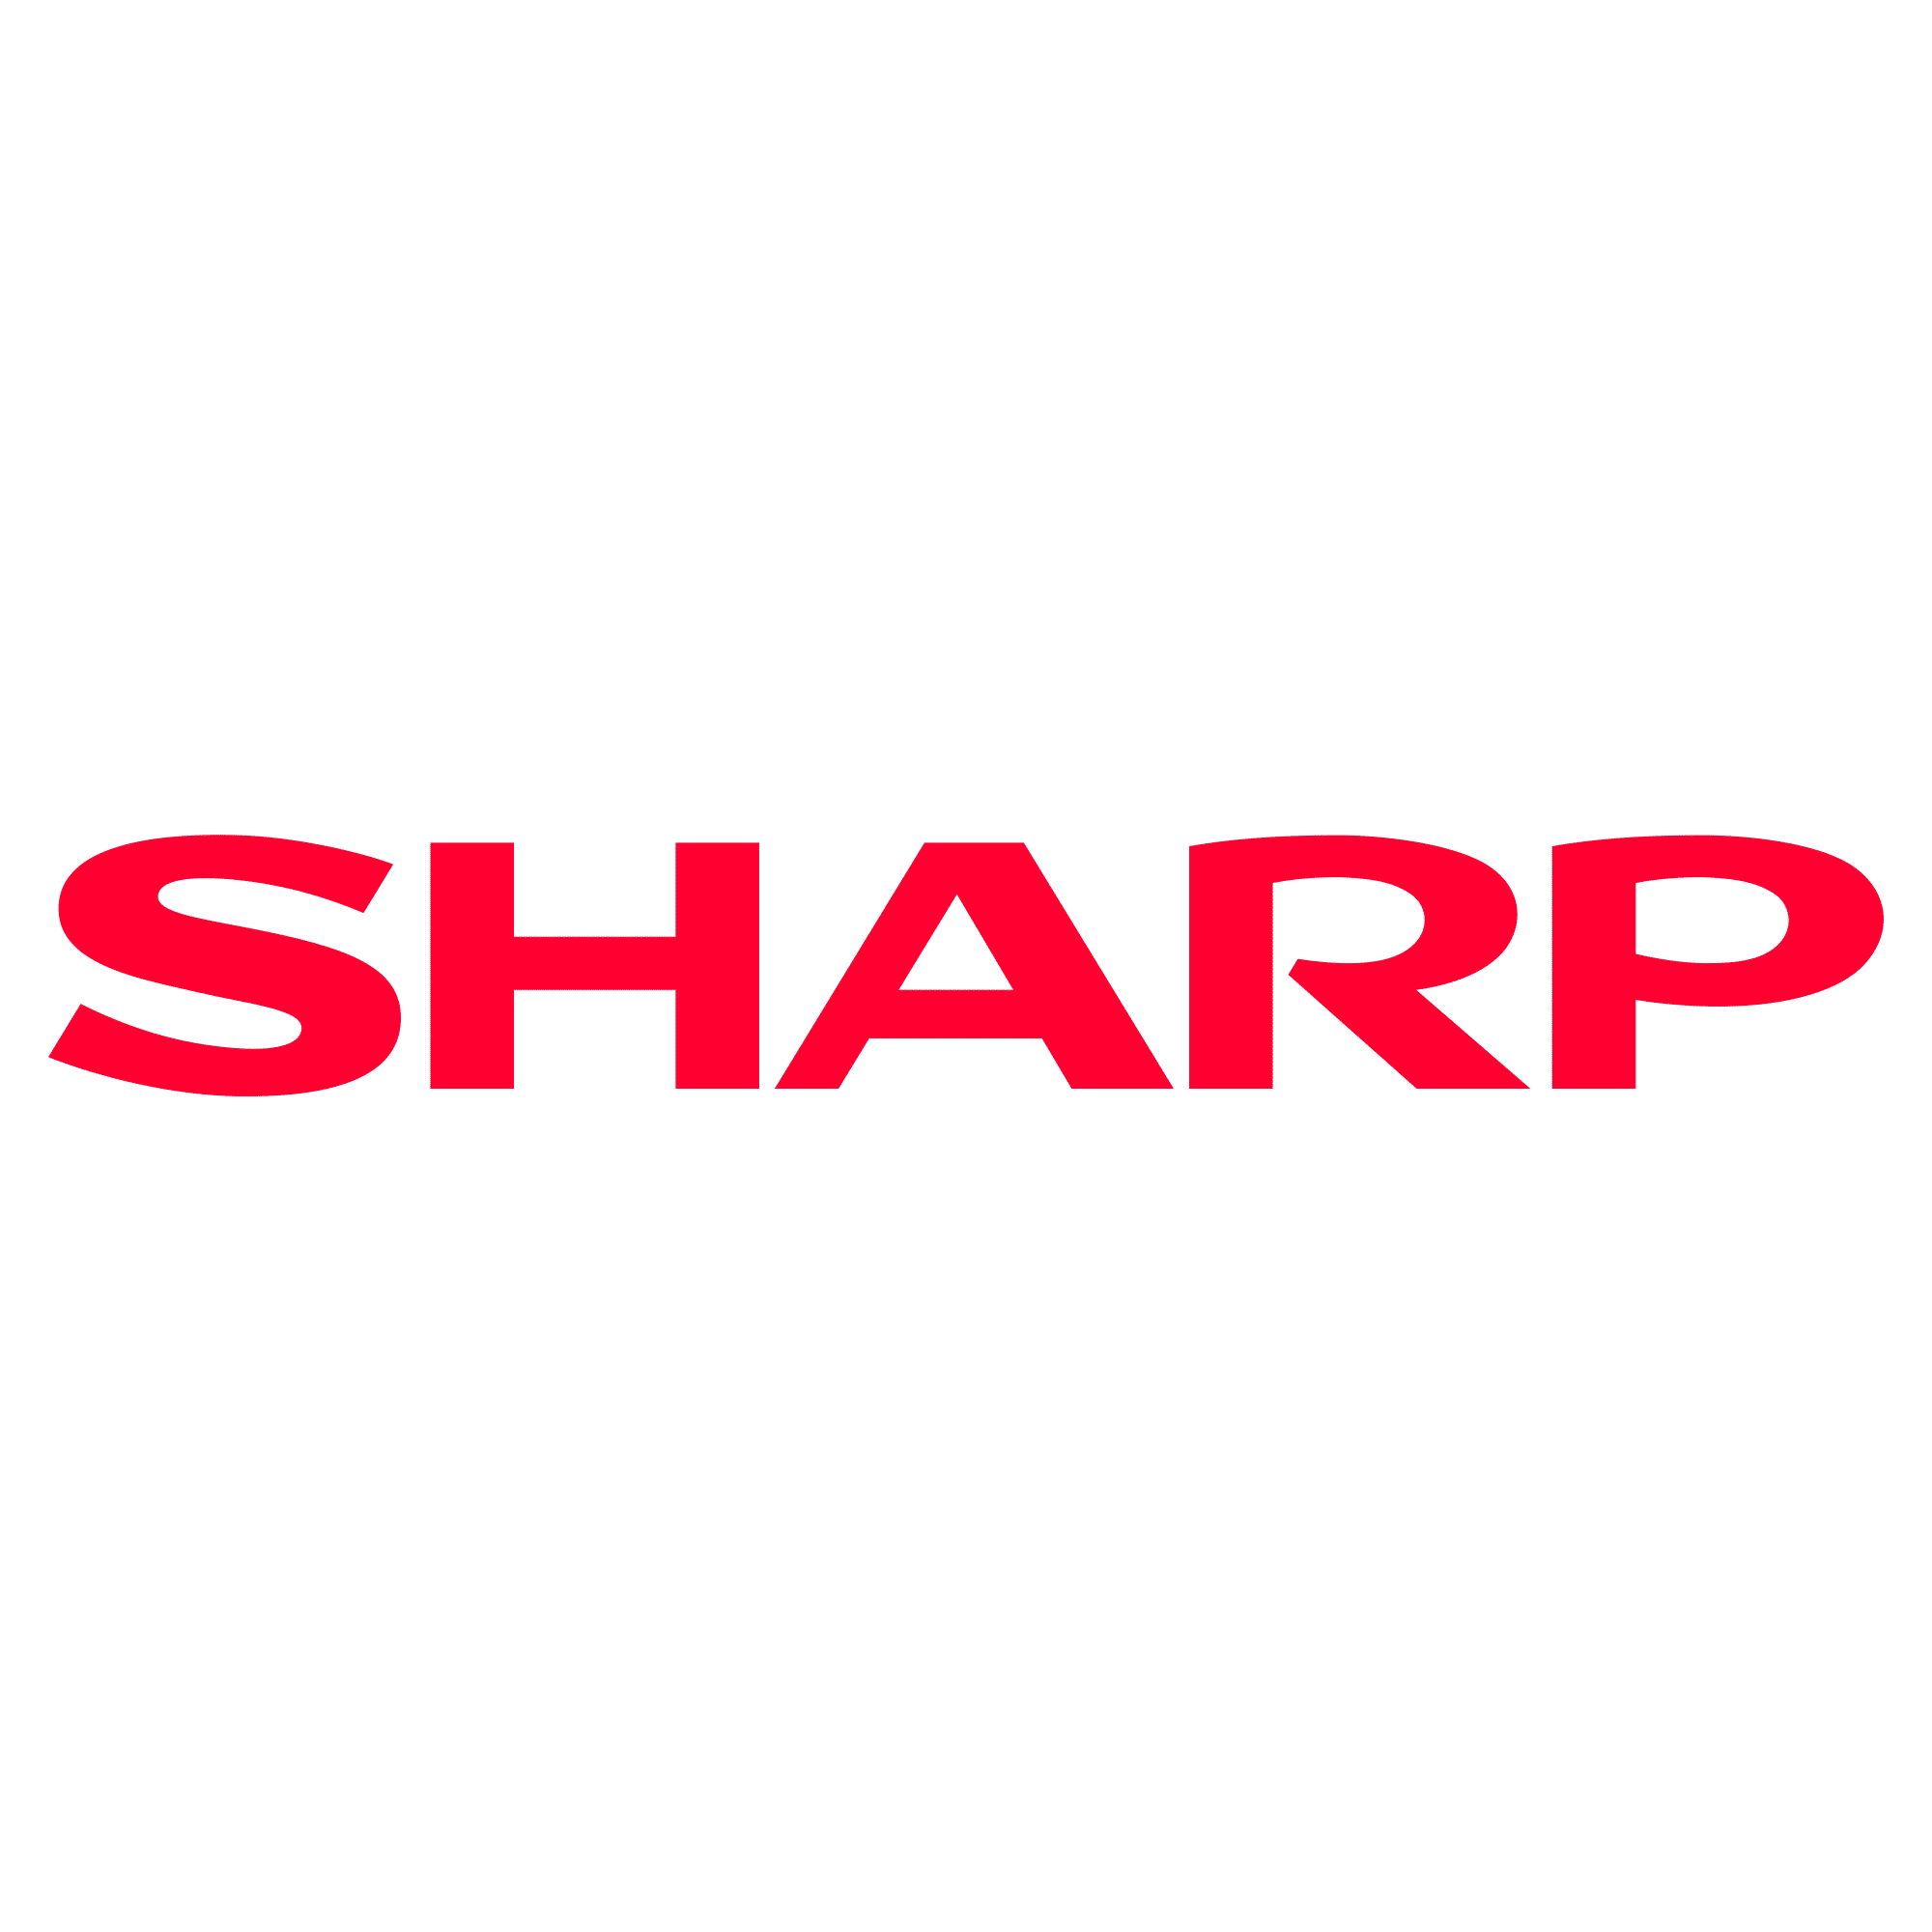 SHARP - Logo